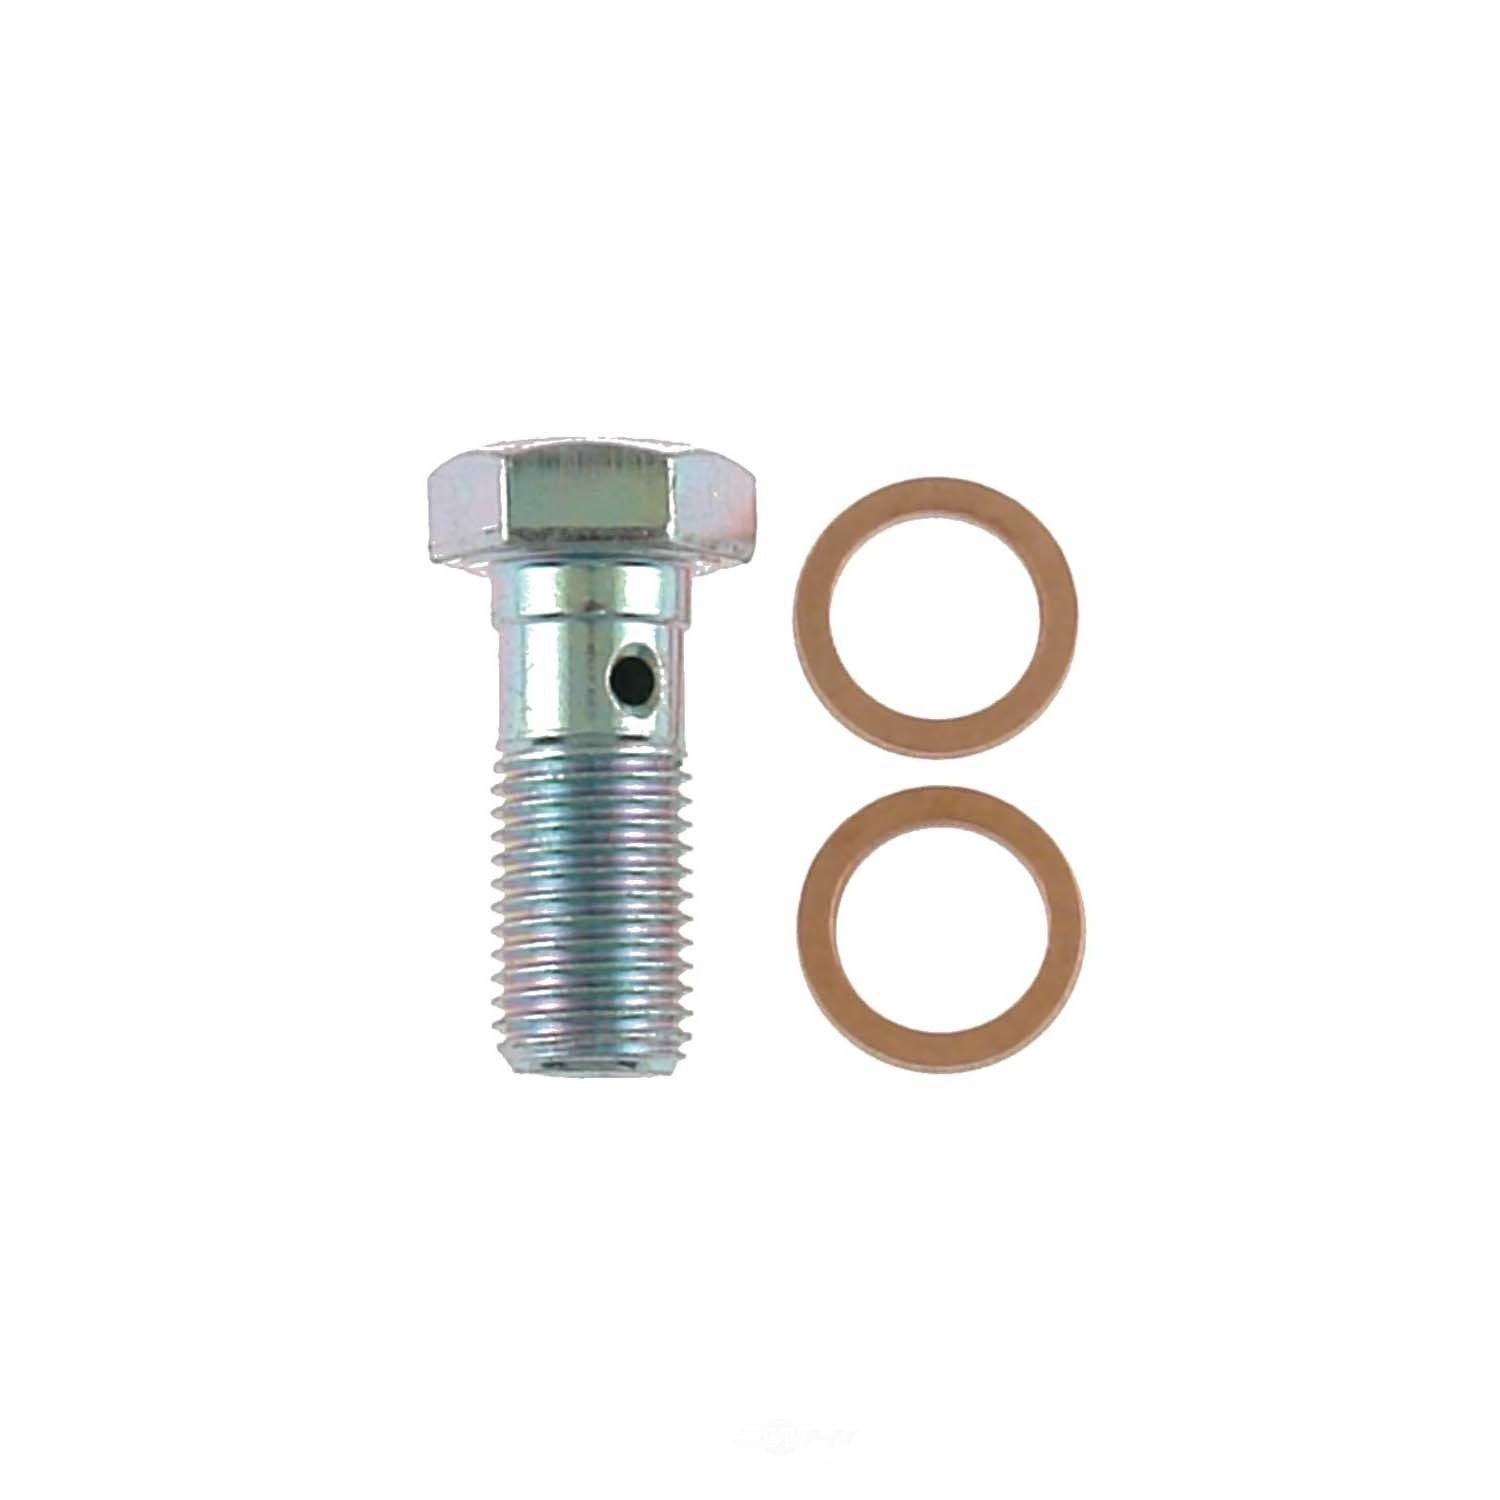 CARLSON QUALITY BRAKE PARTS - Brake Hydraulic Banjo Bolt - CRL H9459-2